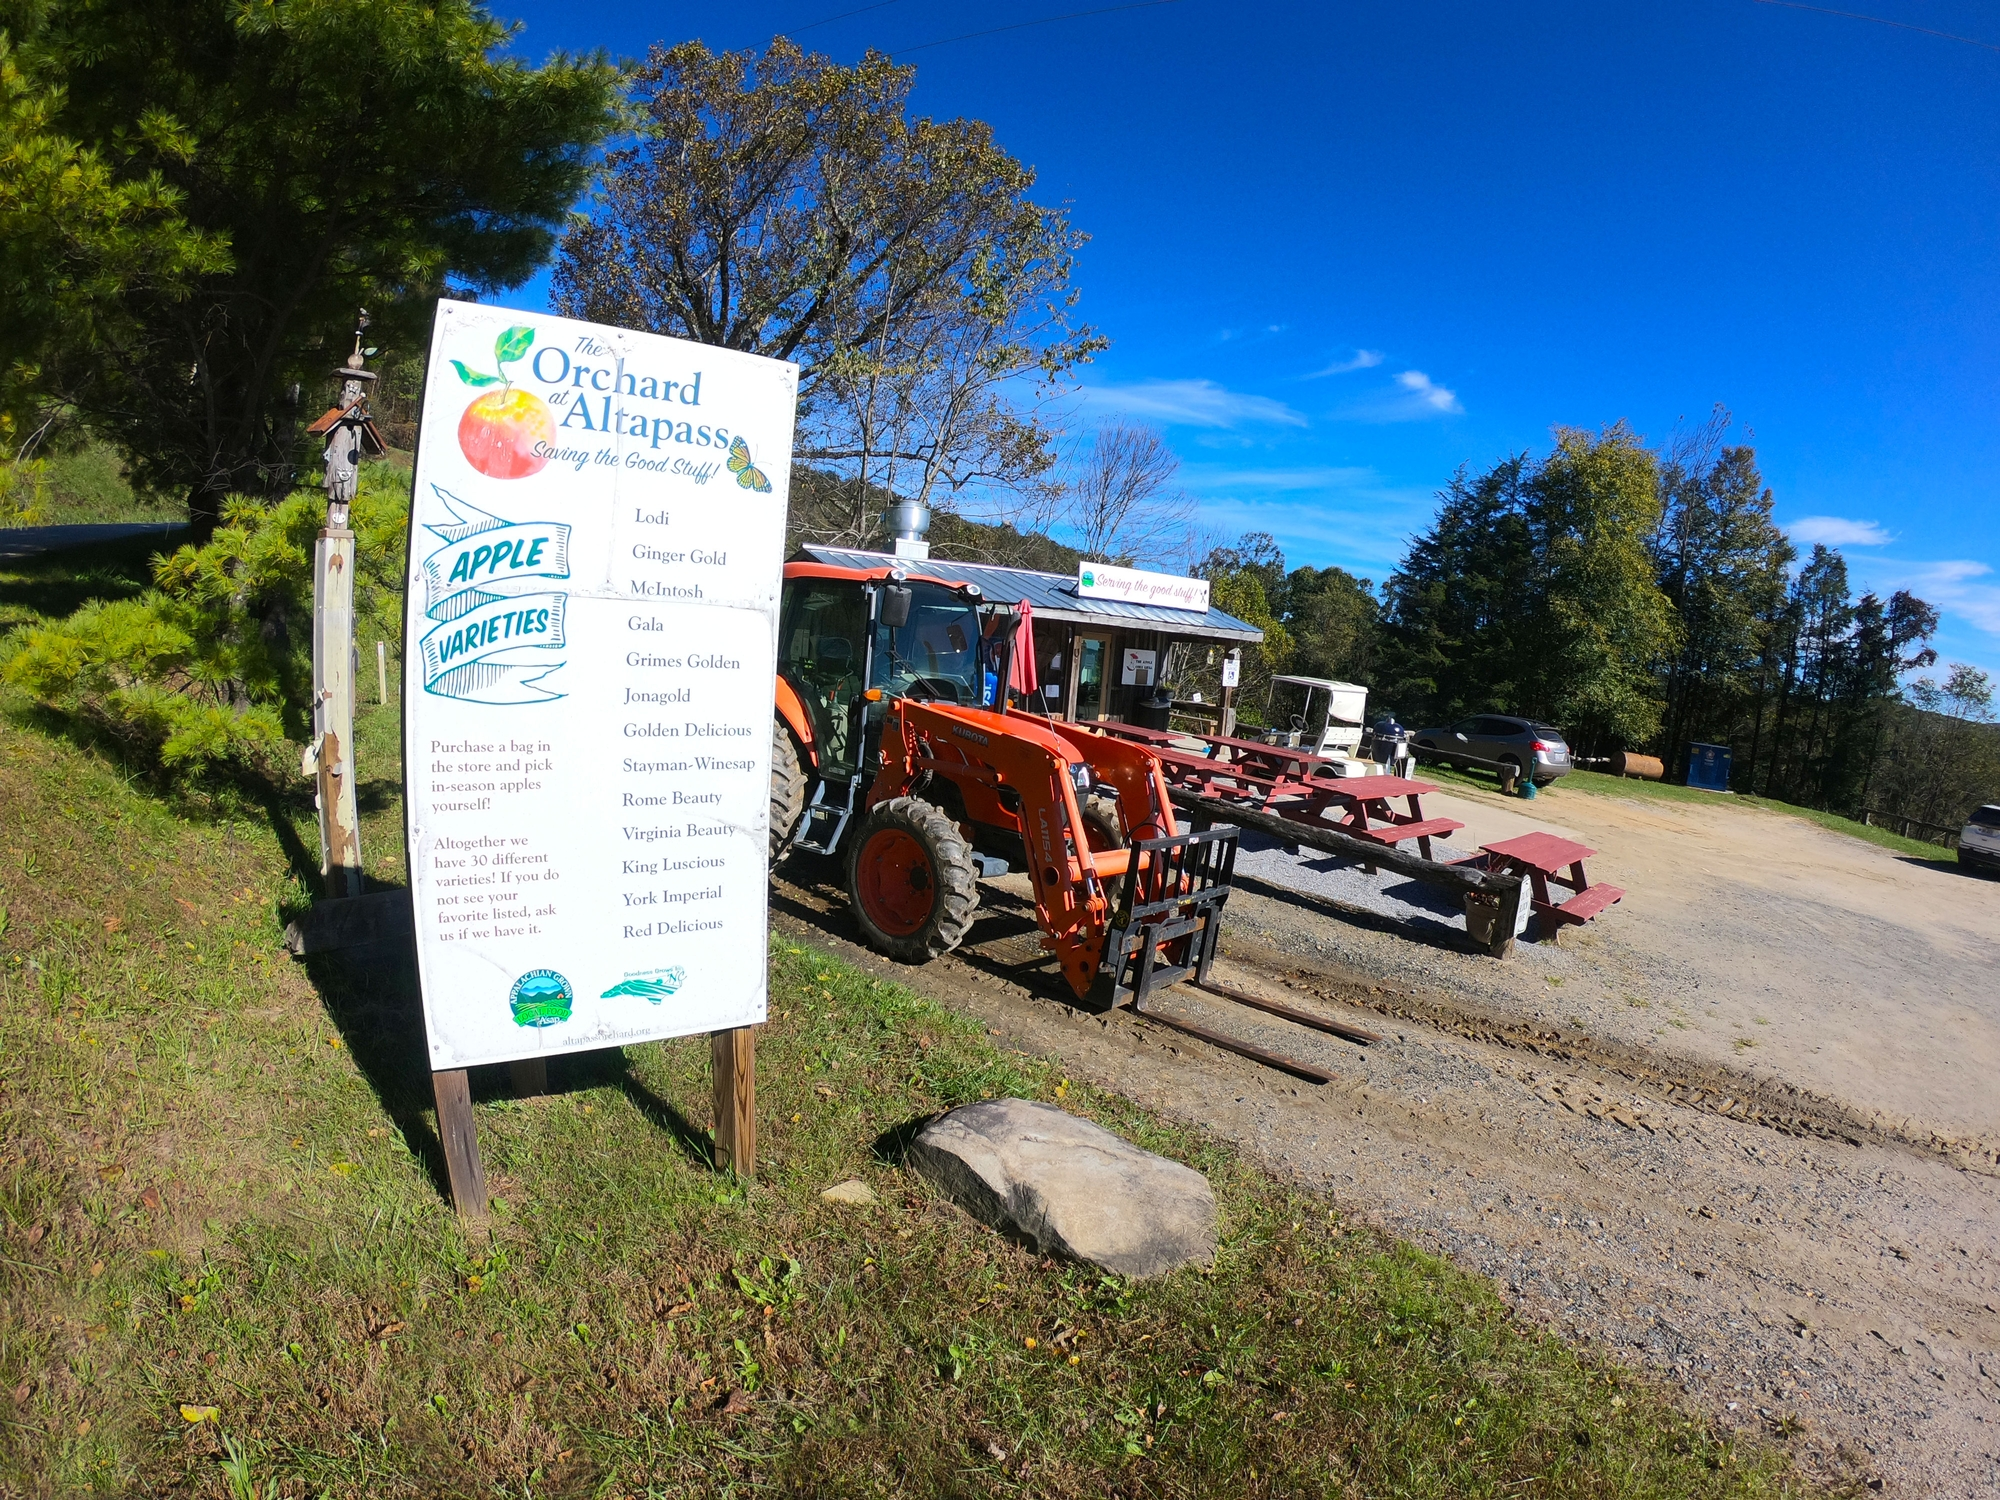 Image of gorgeous autumn day at The Historic Orchard of Altapass on the Blue Ridge Park in North Carolina with signage, tractors, and picnic tables